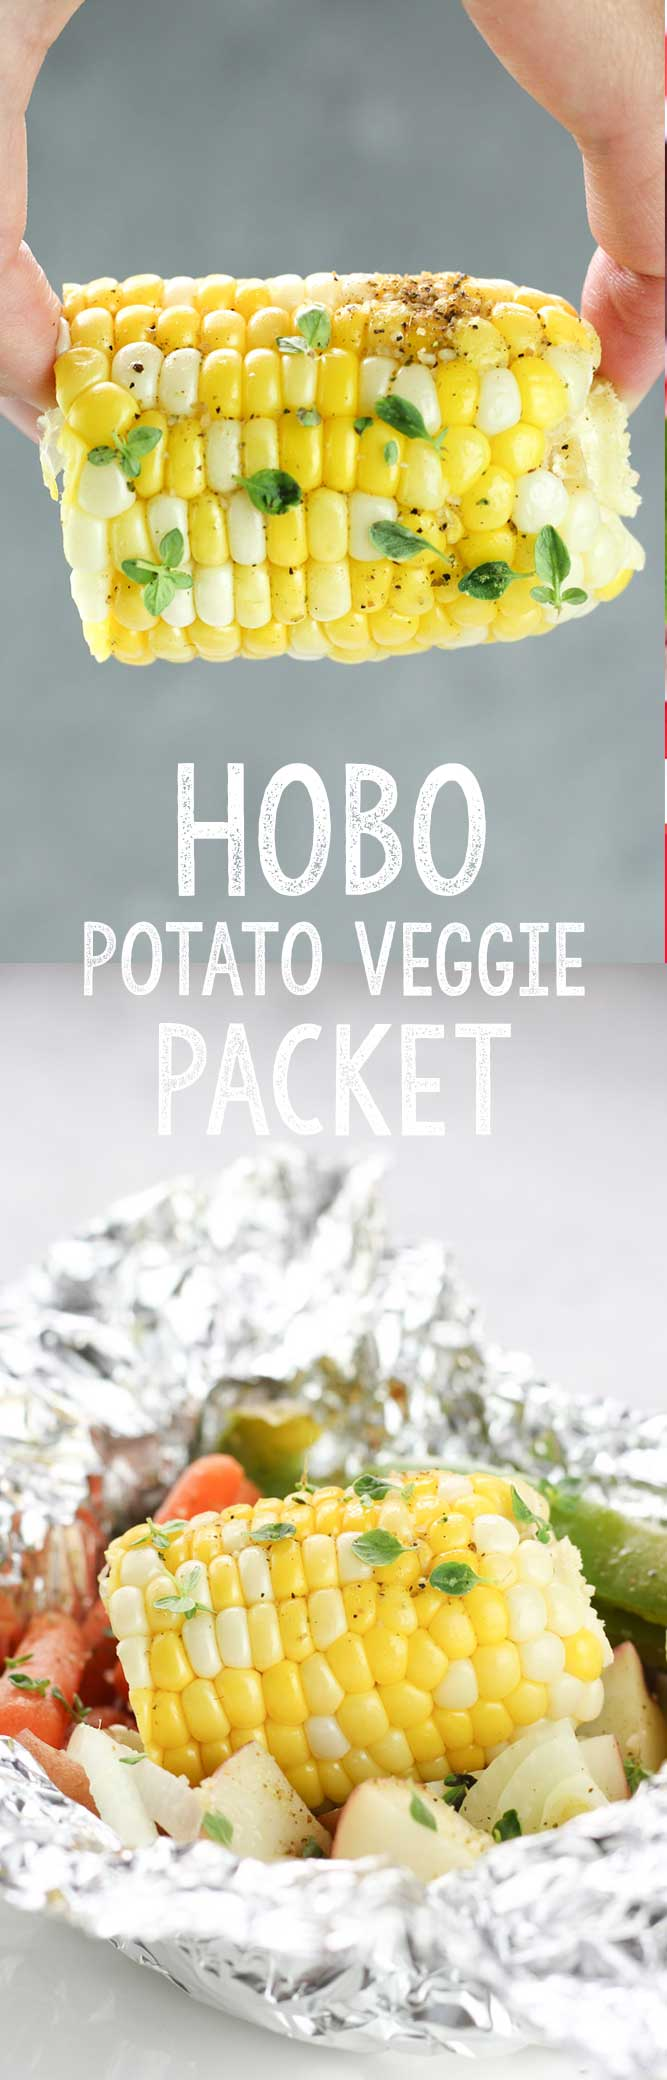 A hobo potato veggie packet is the perfect foil dinner or side dish!